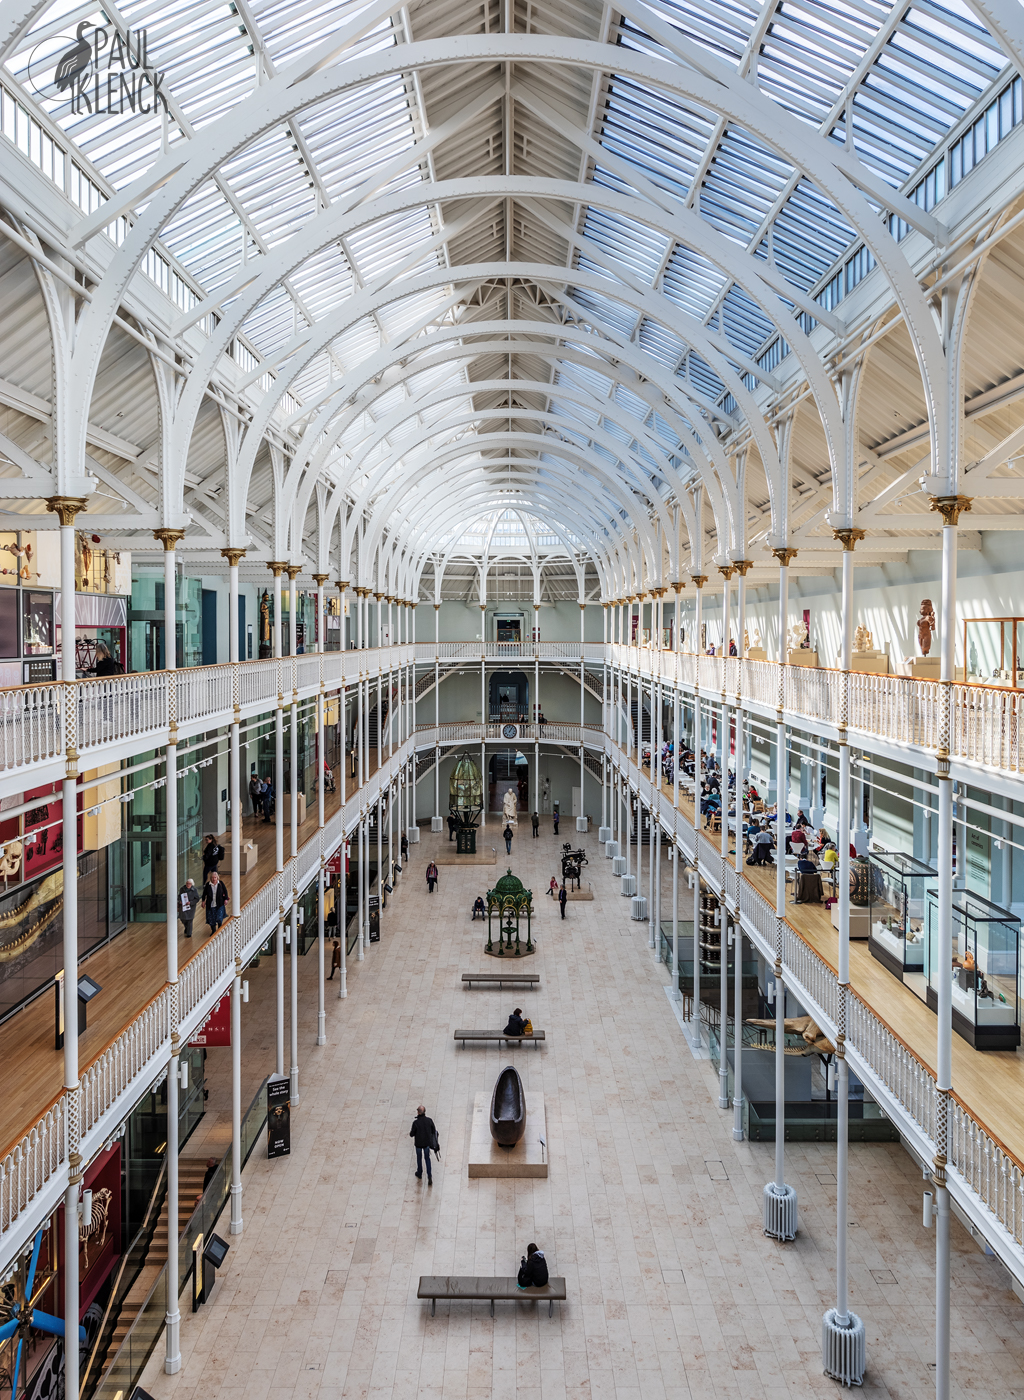 Grand Gallery, National Museum of Scotland, Edinburgh